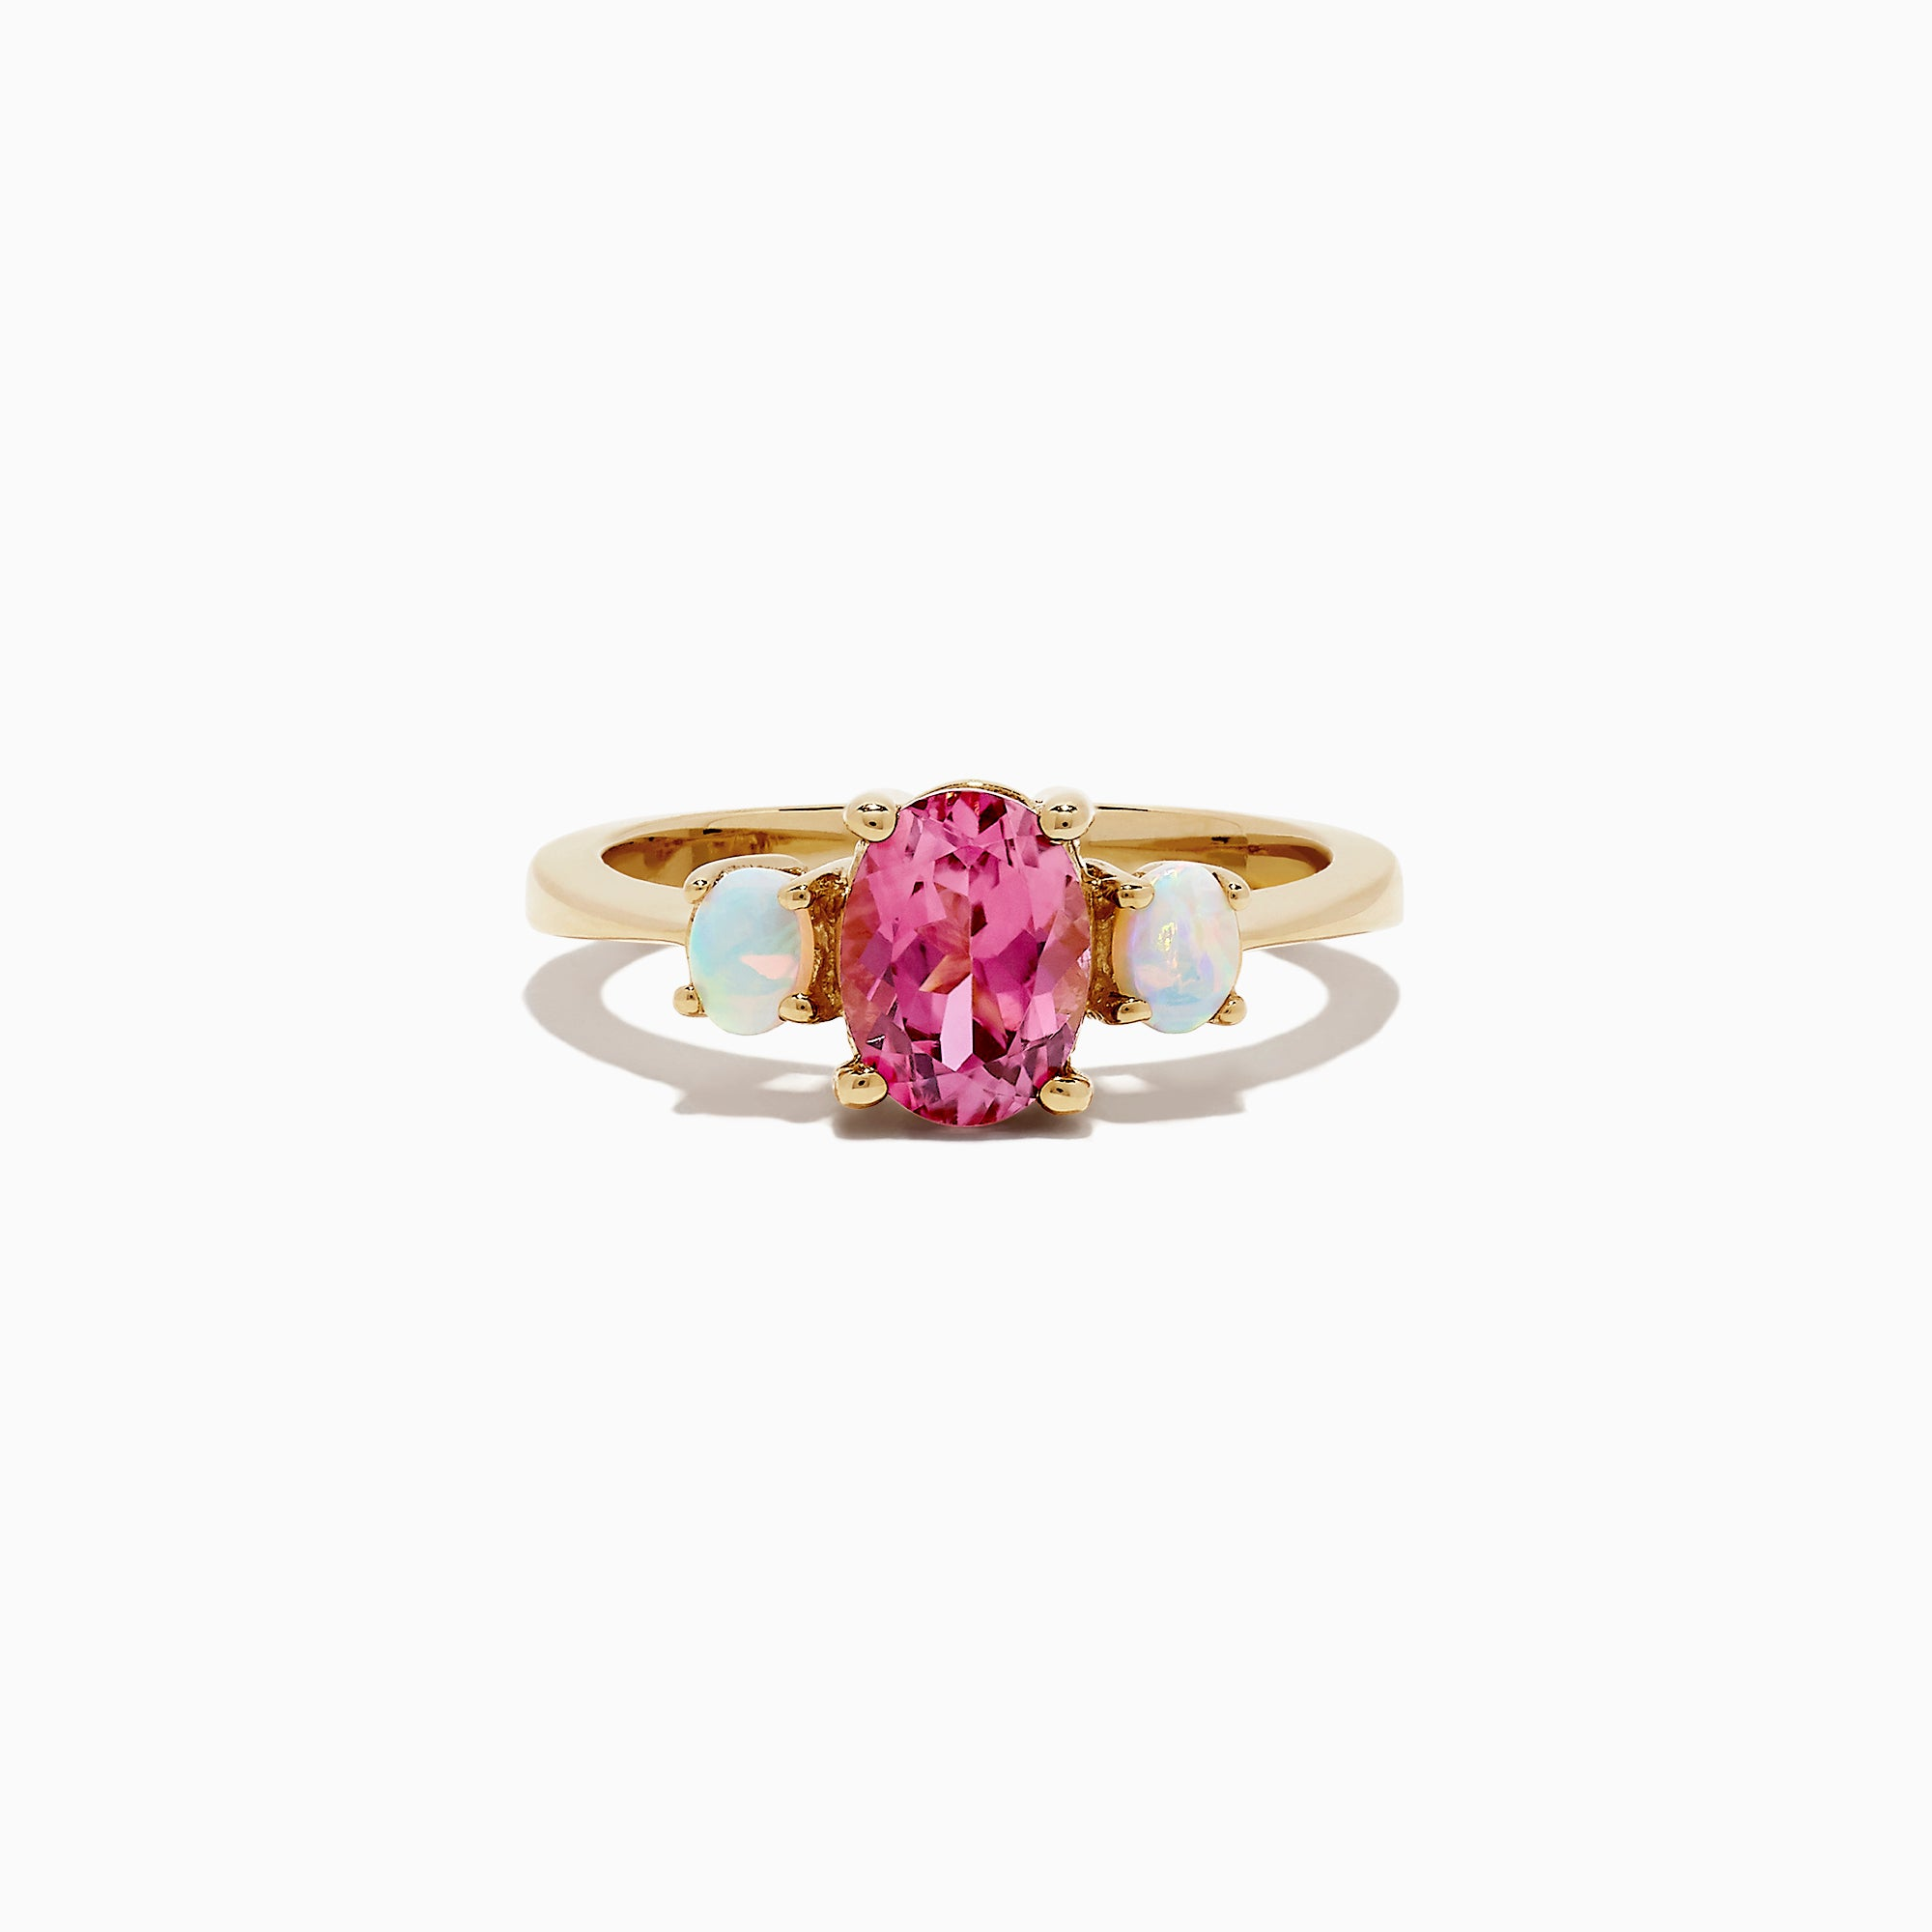 Effy 14K Yellow Gold Pink Tourmaline and Opal Three Stone Ring, 1.75 TCW